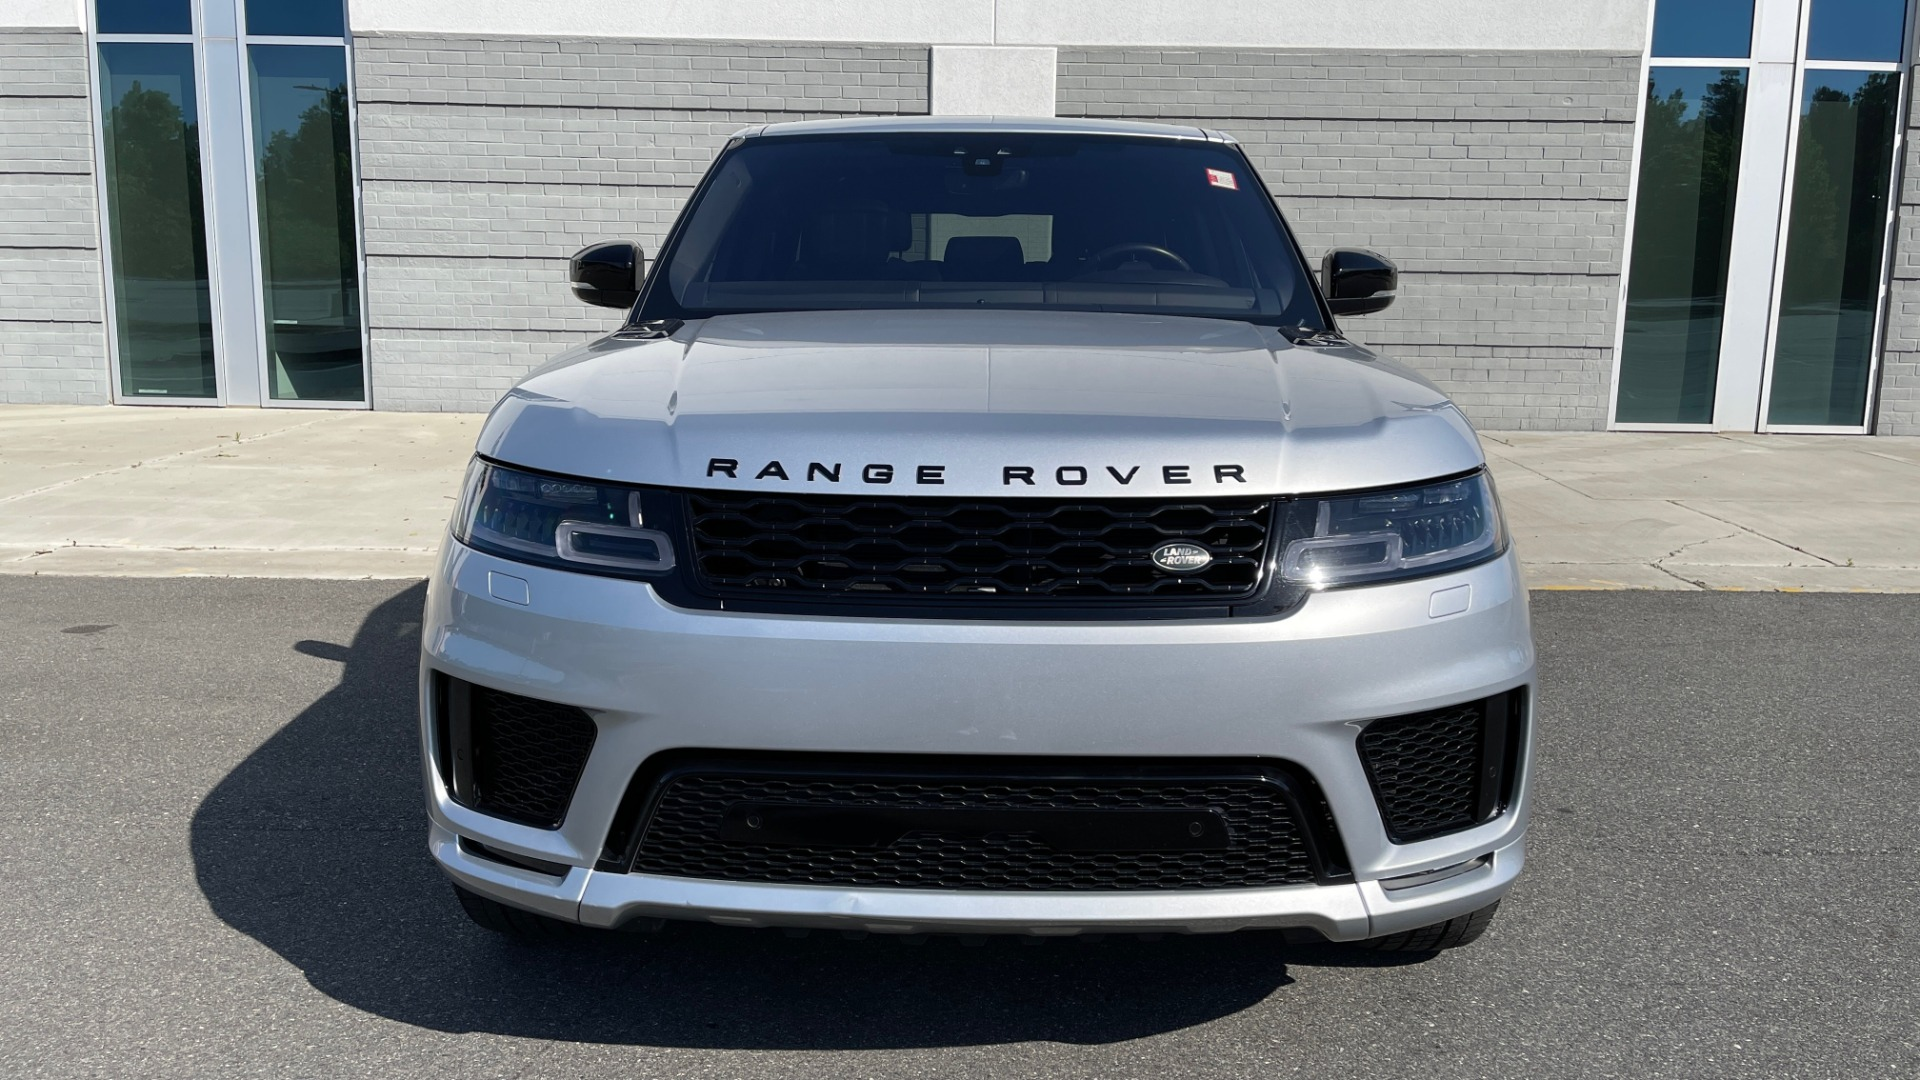 Used 2019 Land Rover RANGE ROVER SPORT HSE DYNAMIC / NAV / PANO-ROOF / BLIND SPOT / LANE DEPART / REARVIEW for sale Sold at Formula Imports in Charlotte NC 28227 2